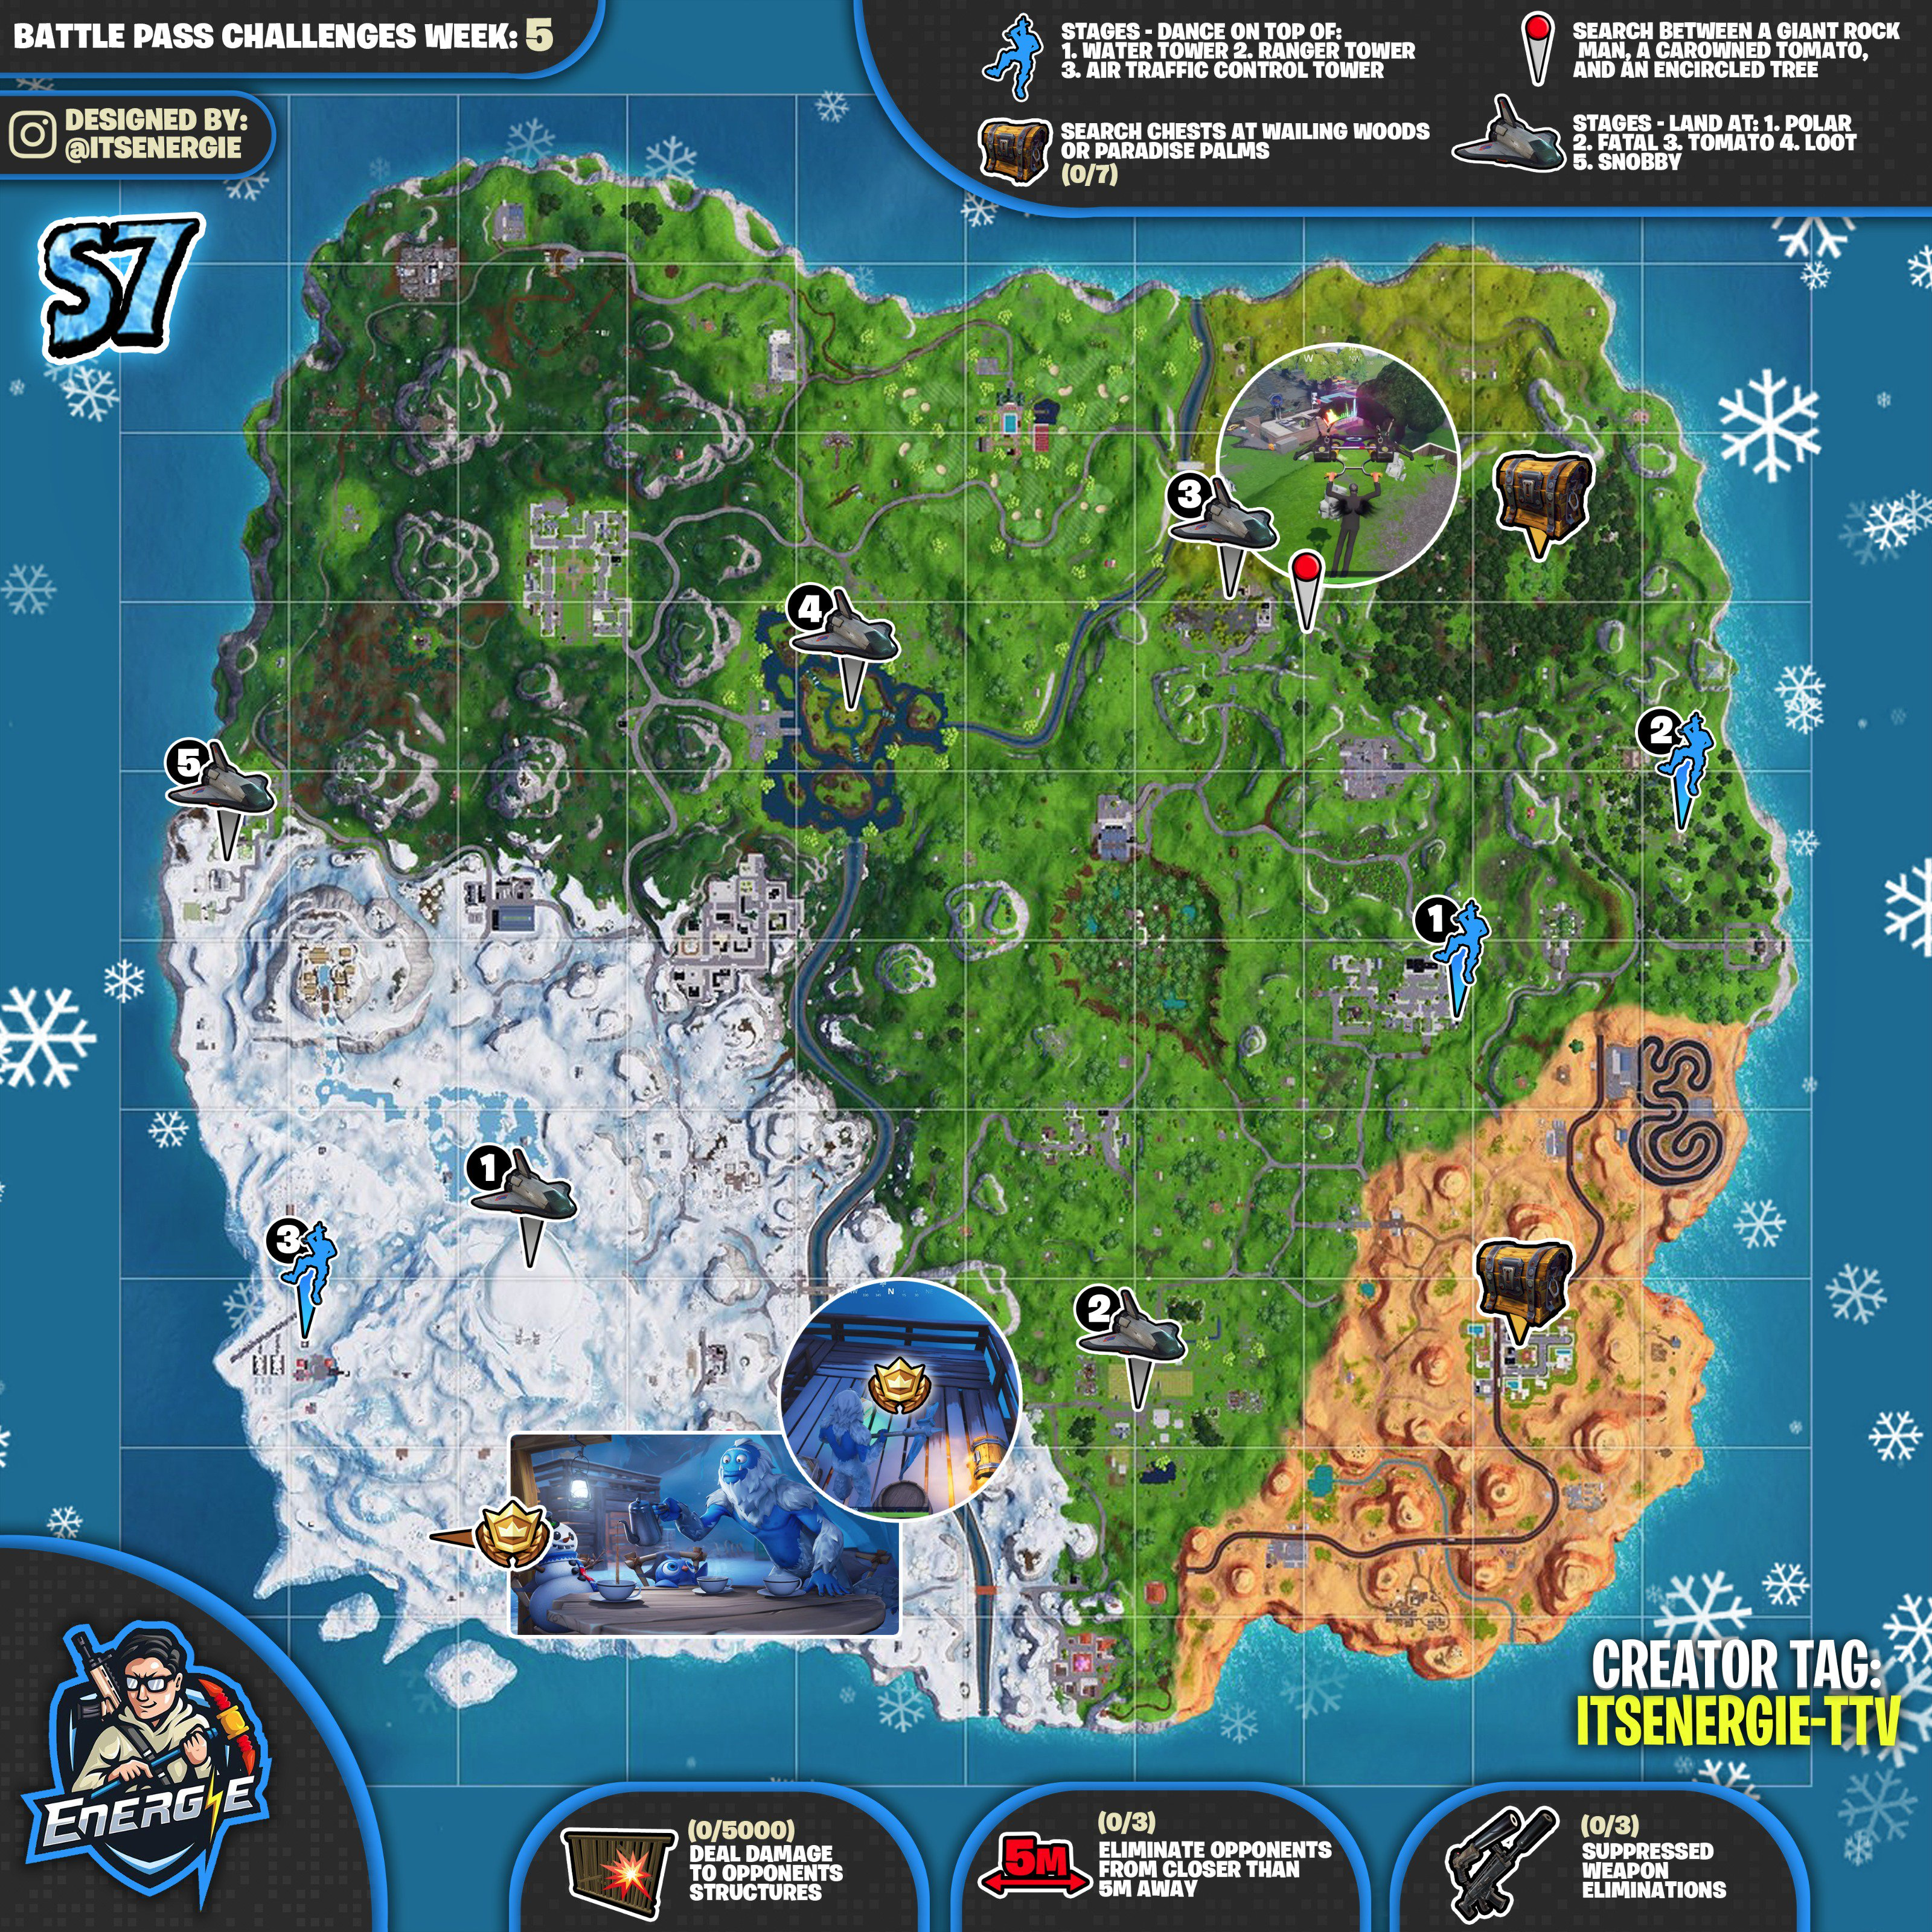 Fortnite Cheat Sheet Map for Season 7, Week 5 Challenges Locations